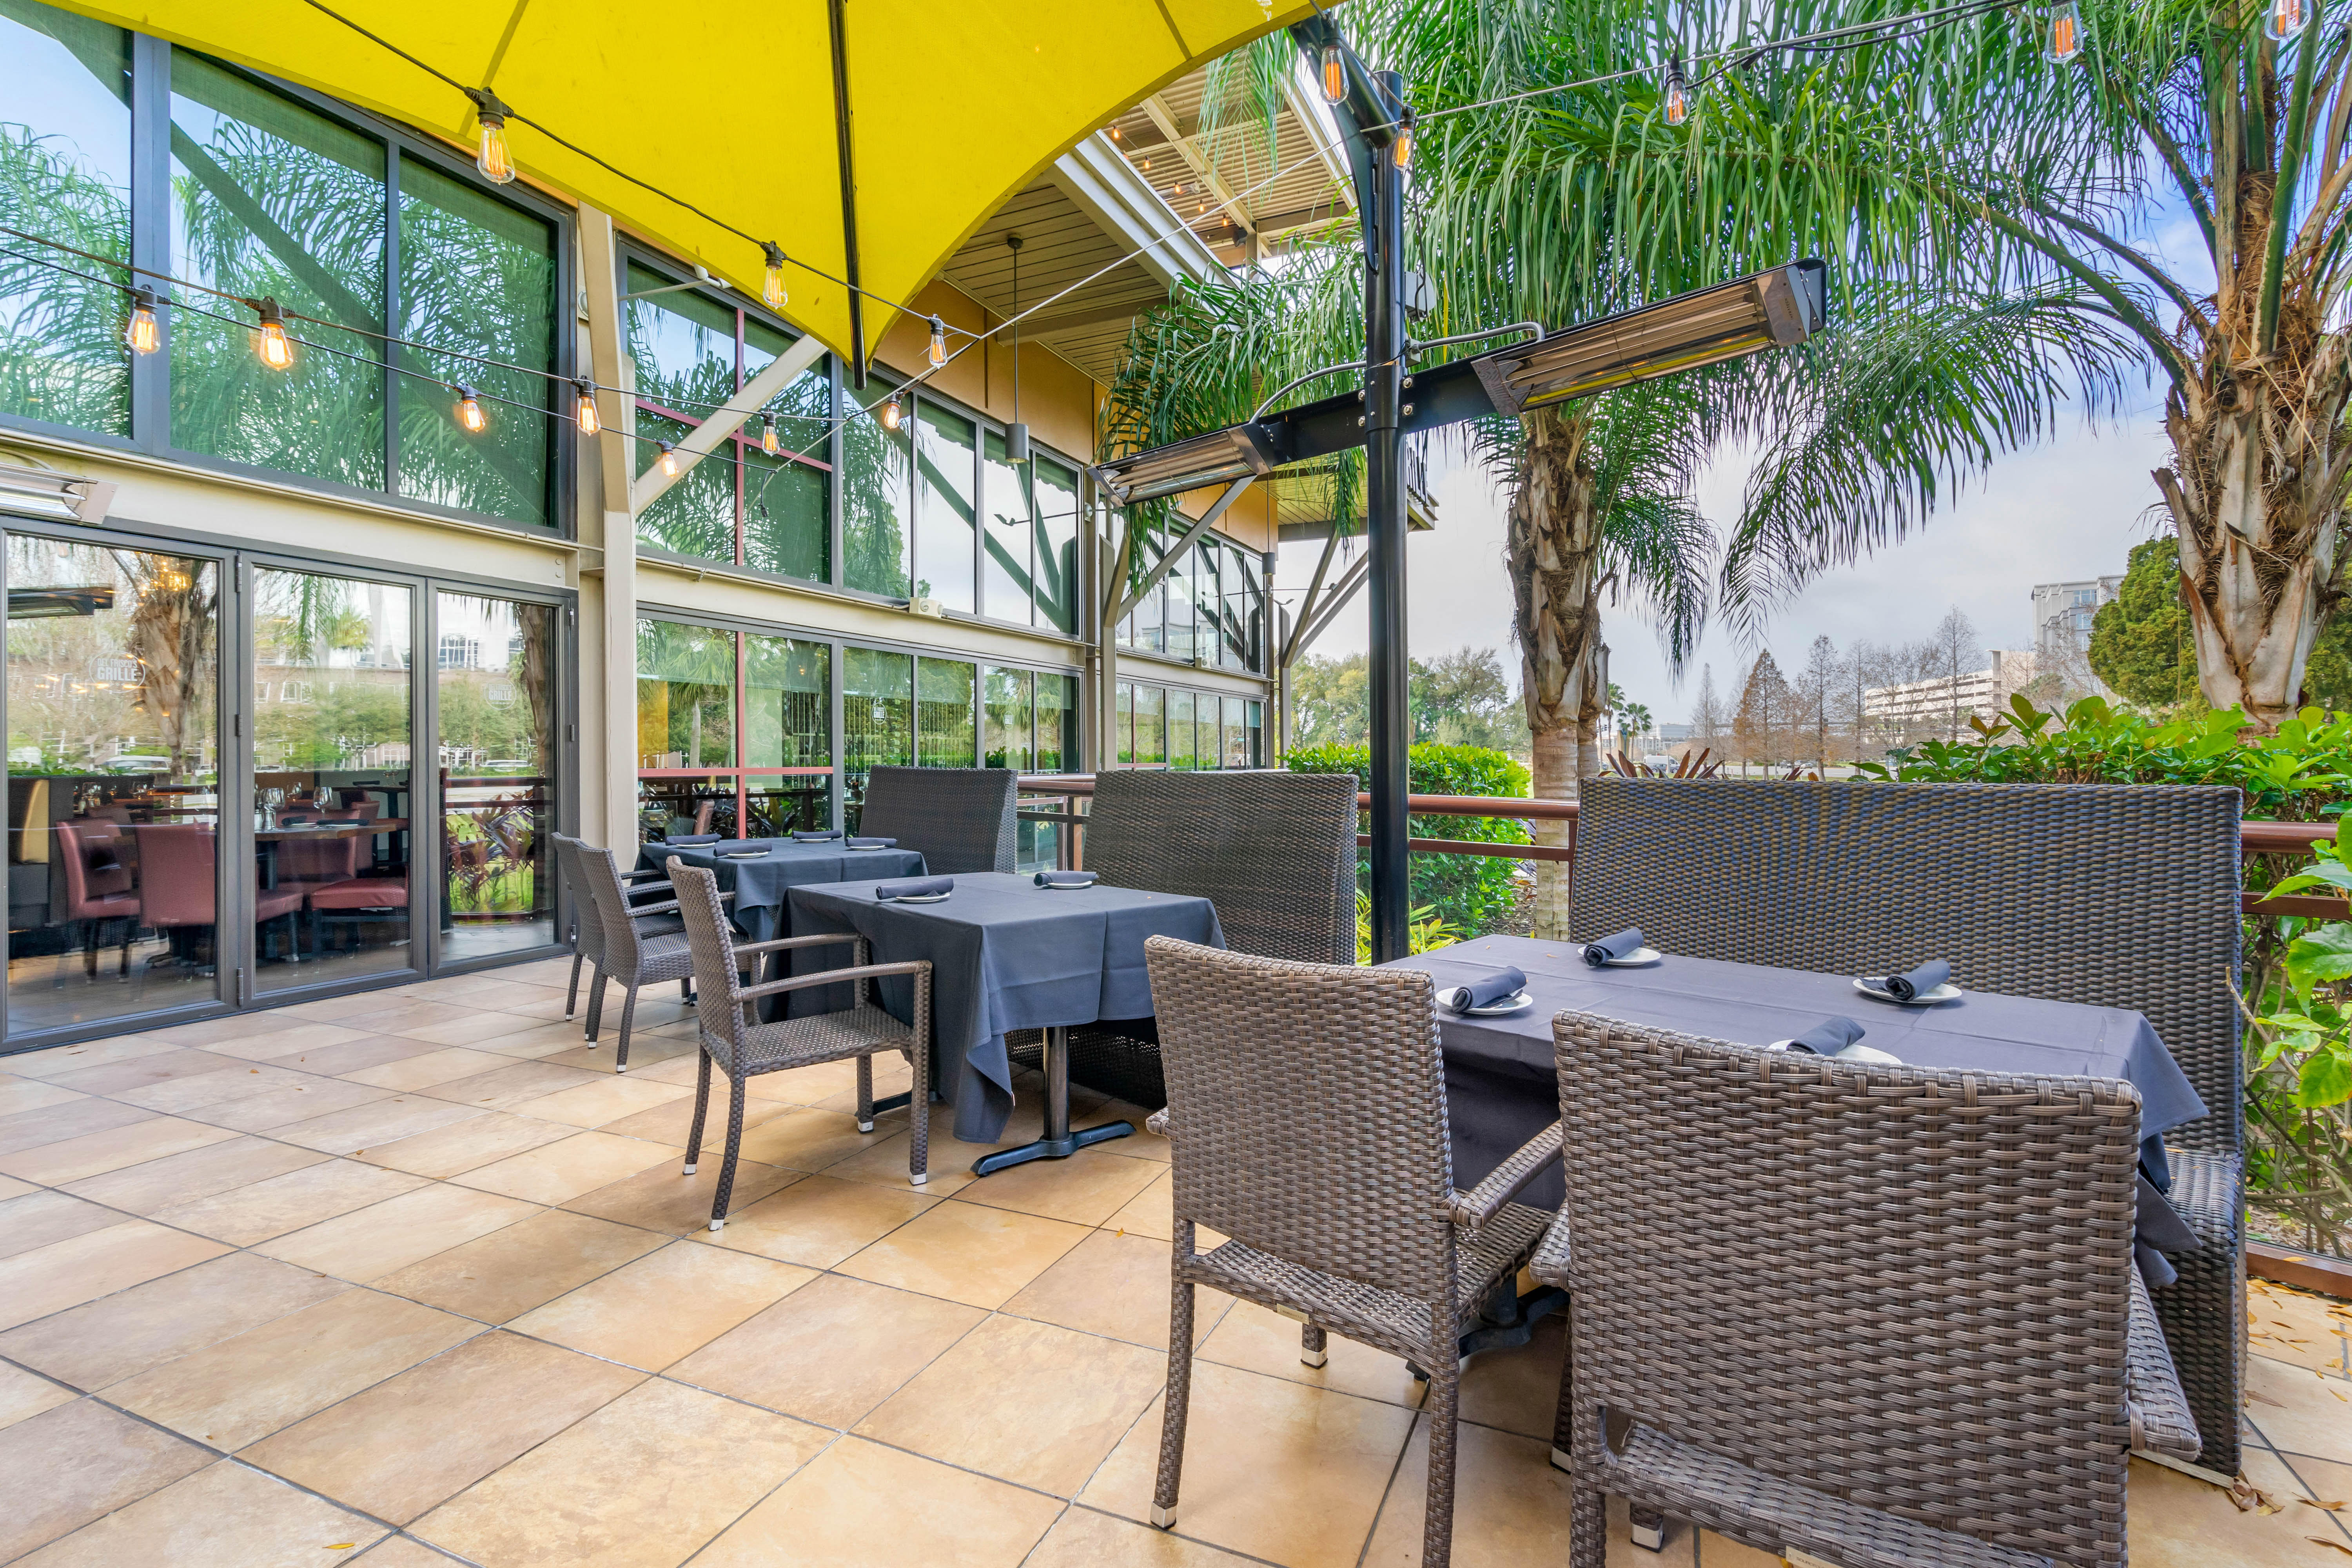 Del Frisco's Grille Tampa 1st Floor Patio group dining room